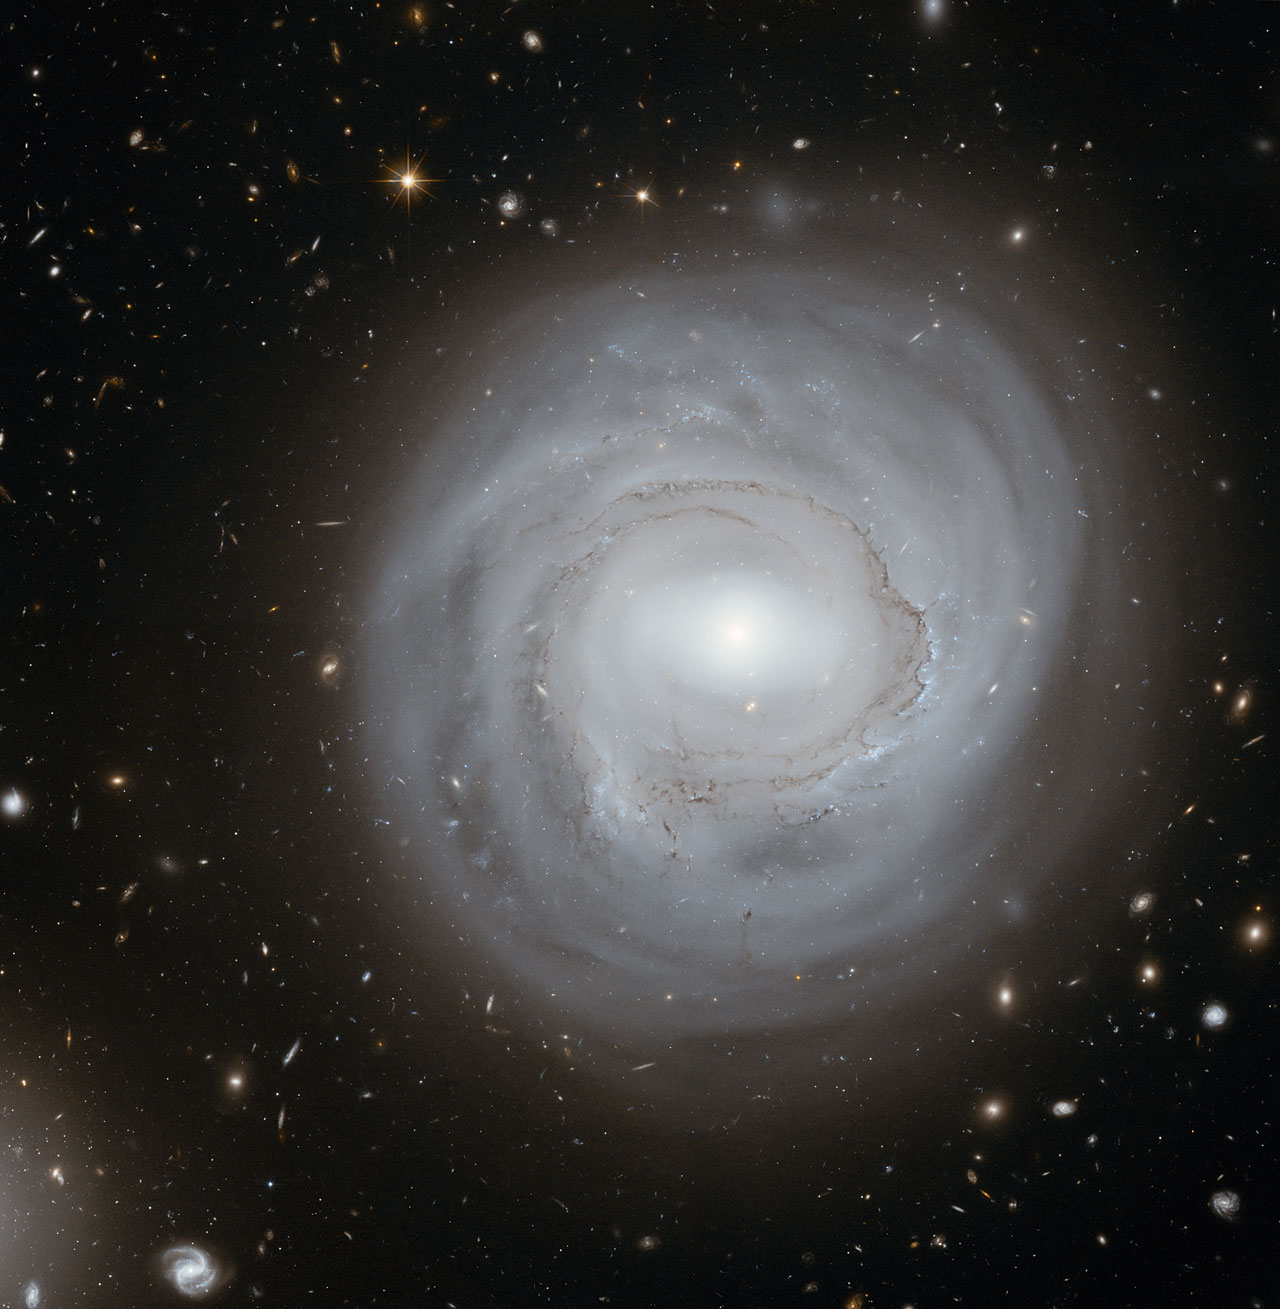 NGC 4921 Image Courtesy of Hubble/ESA